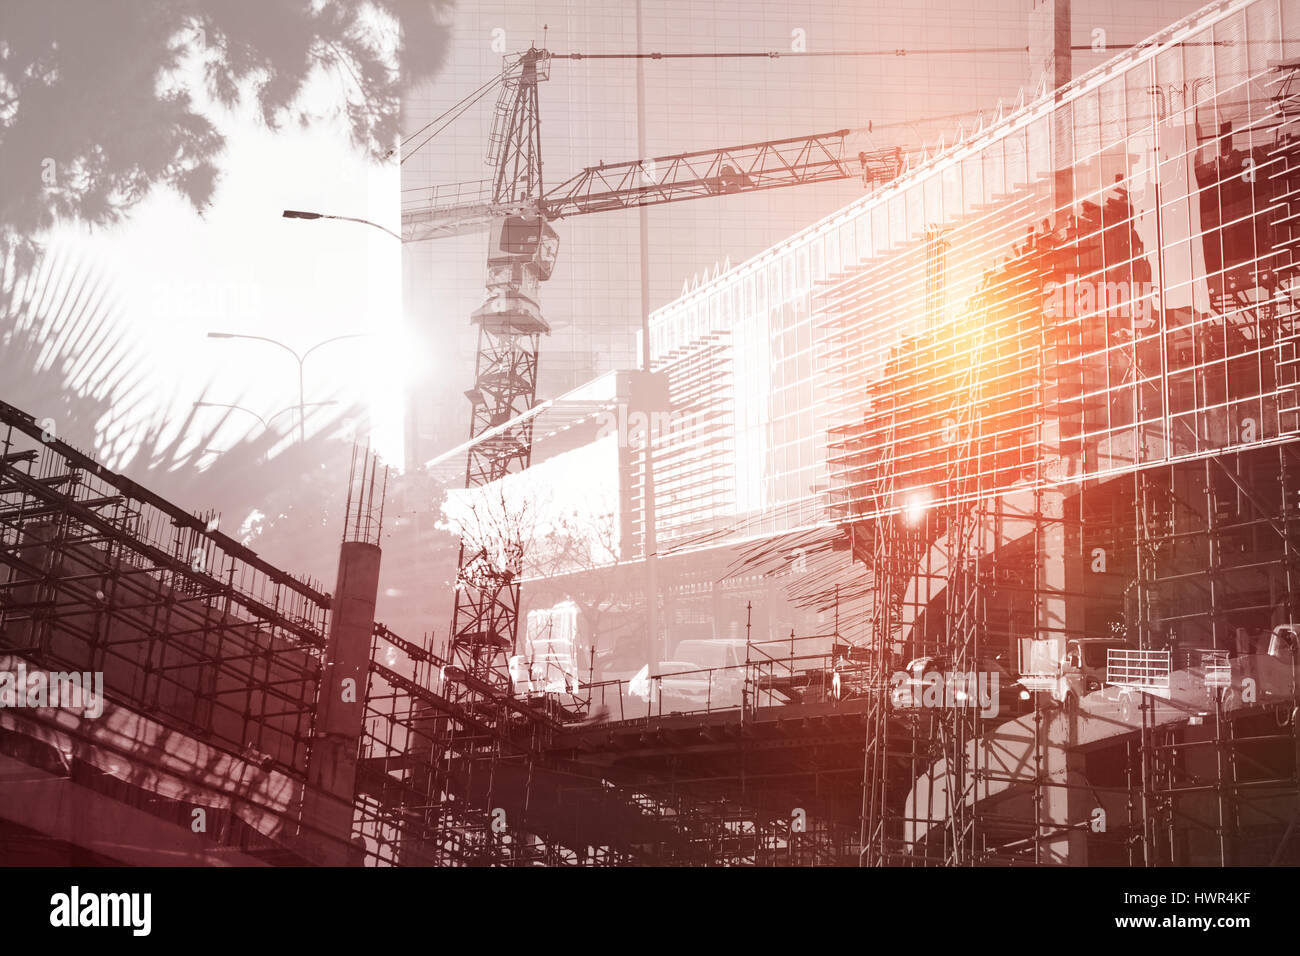 Work in progress in the city against front side of buildings - Stock Image